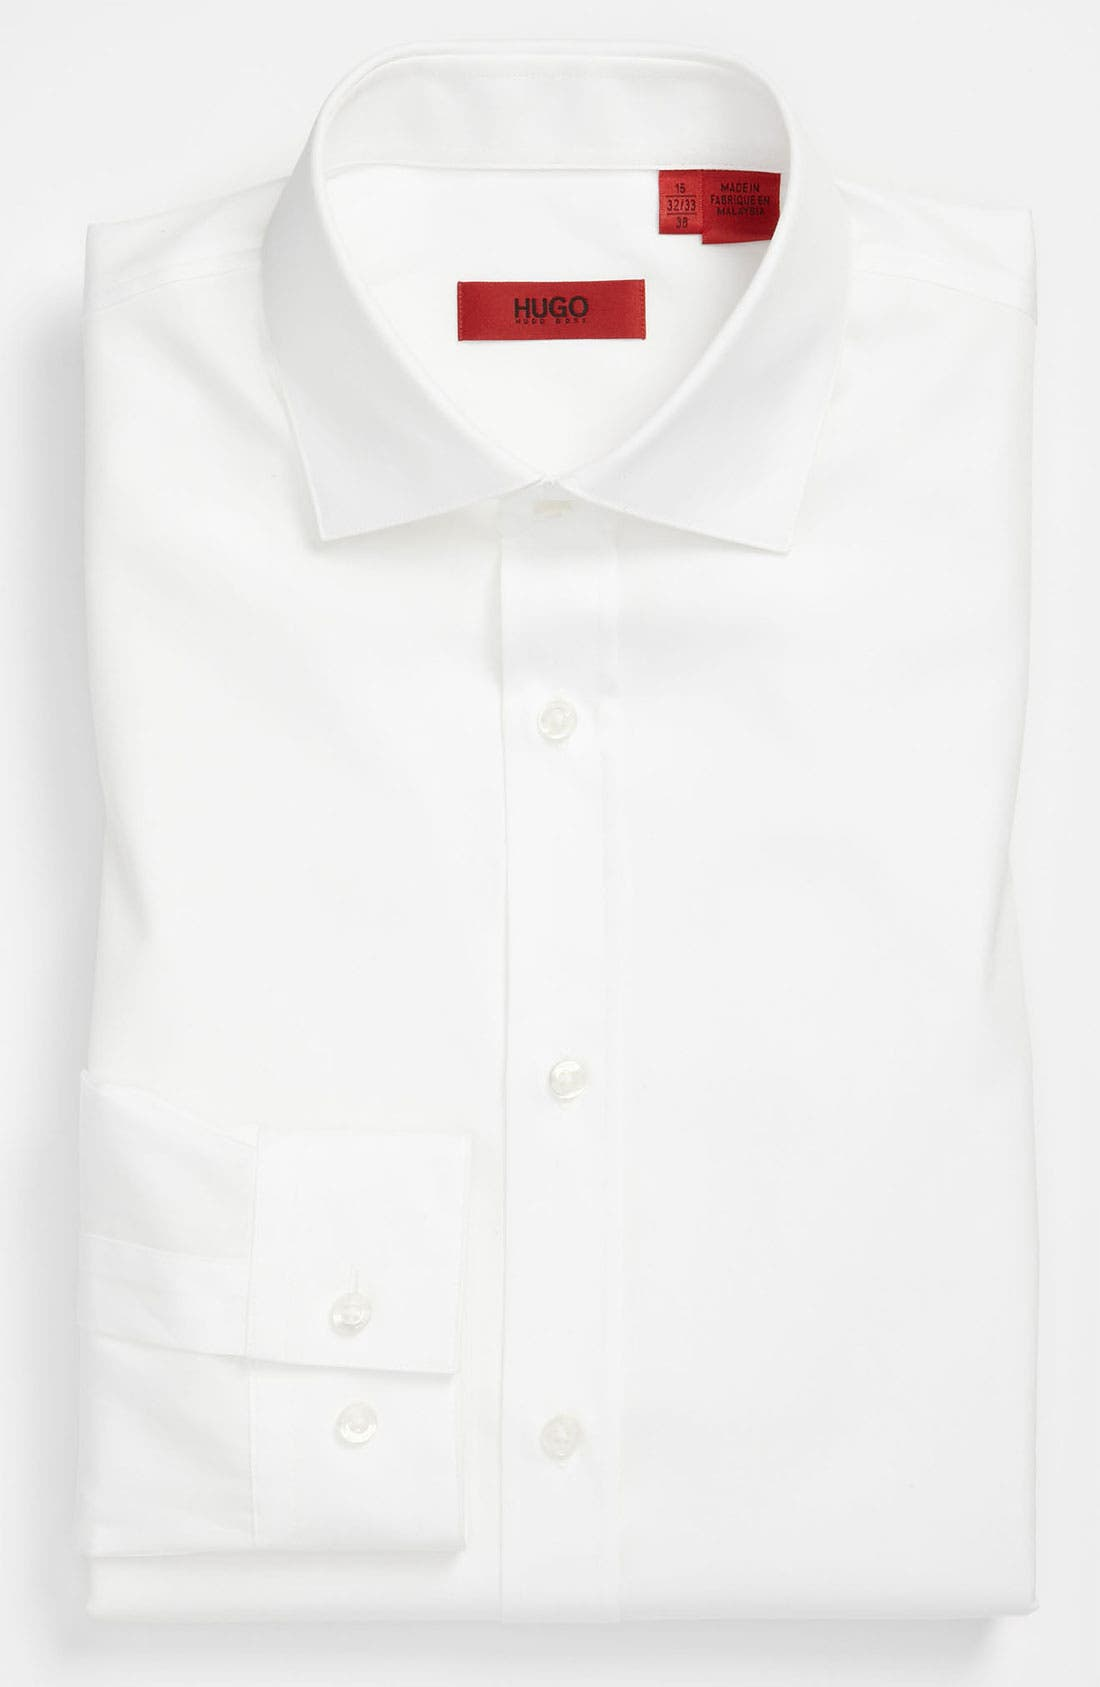 Alternate Image 1 Selected - HUGO Slim Fit Dress Shirt